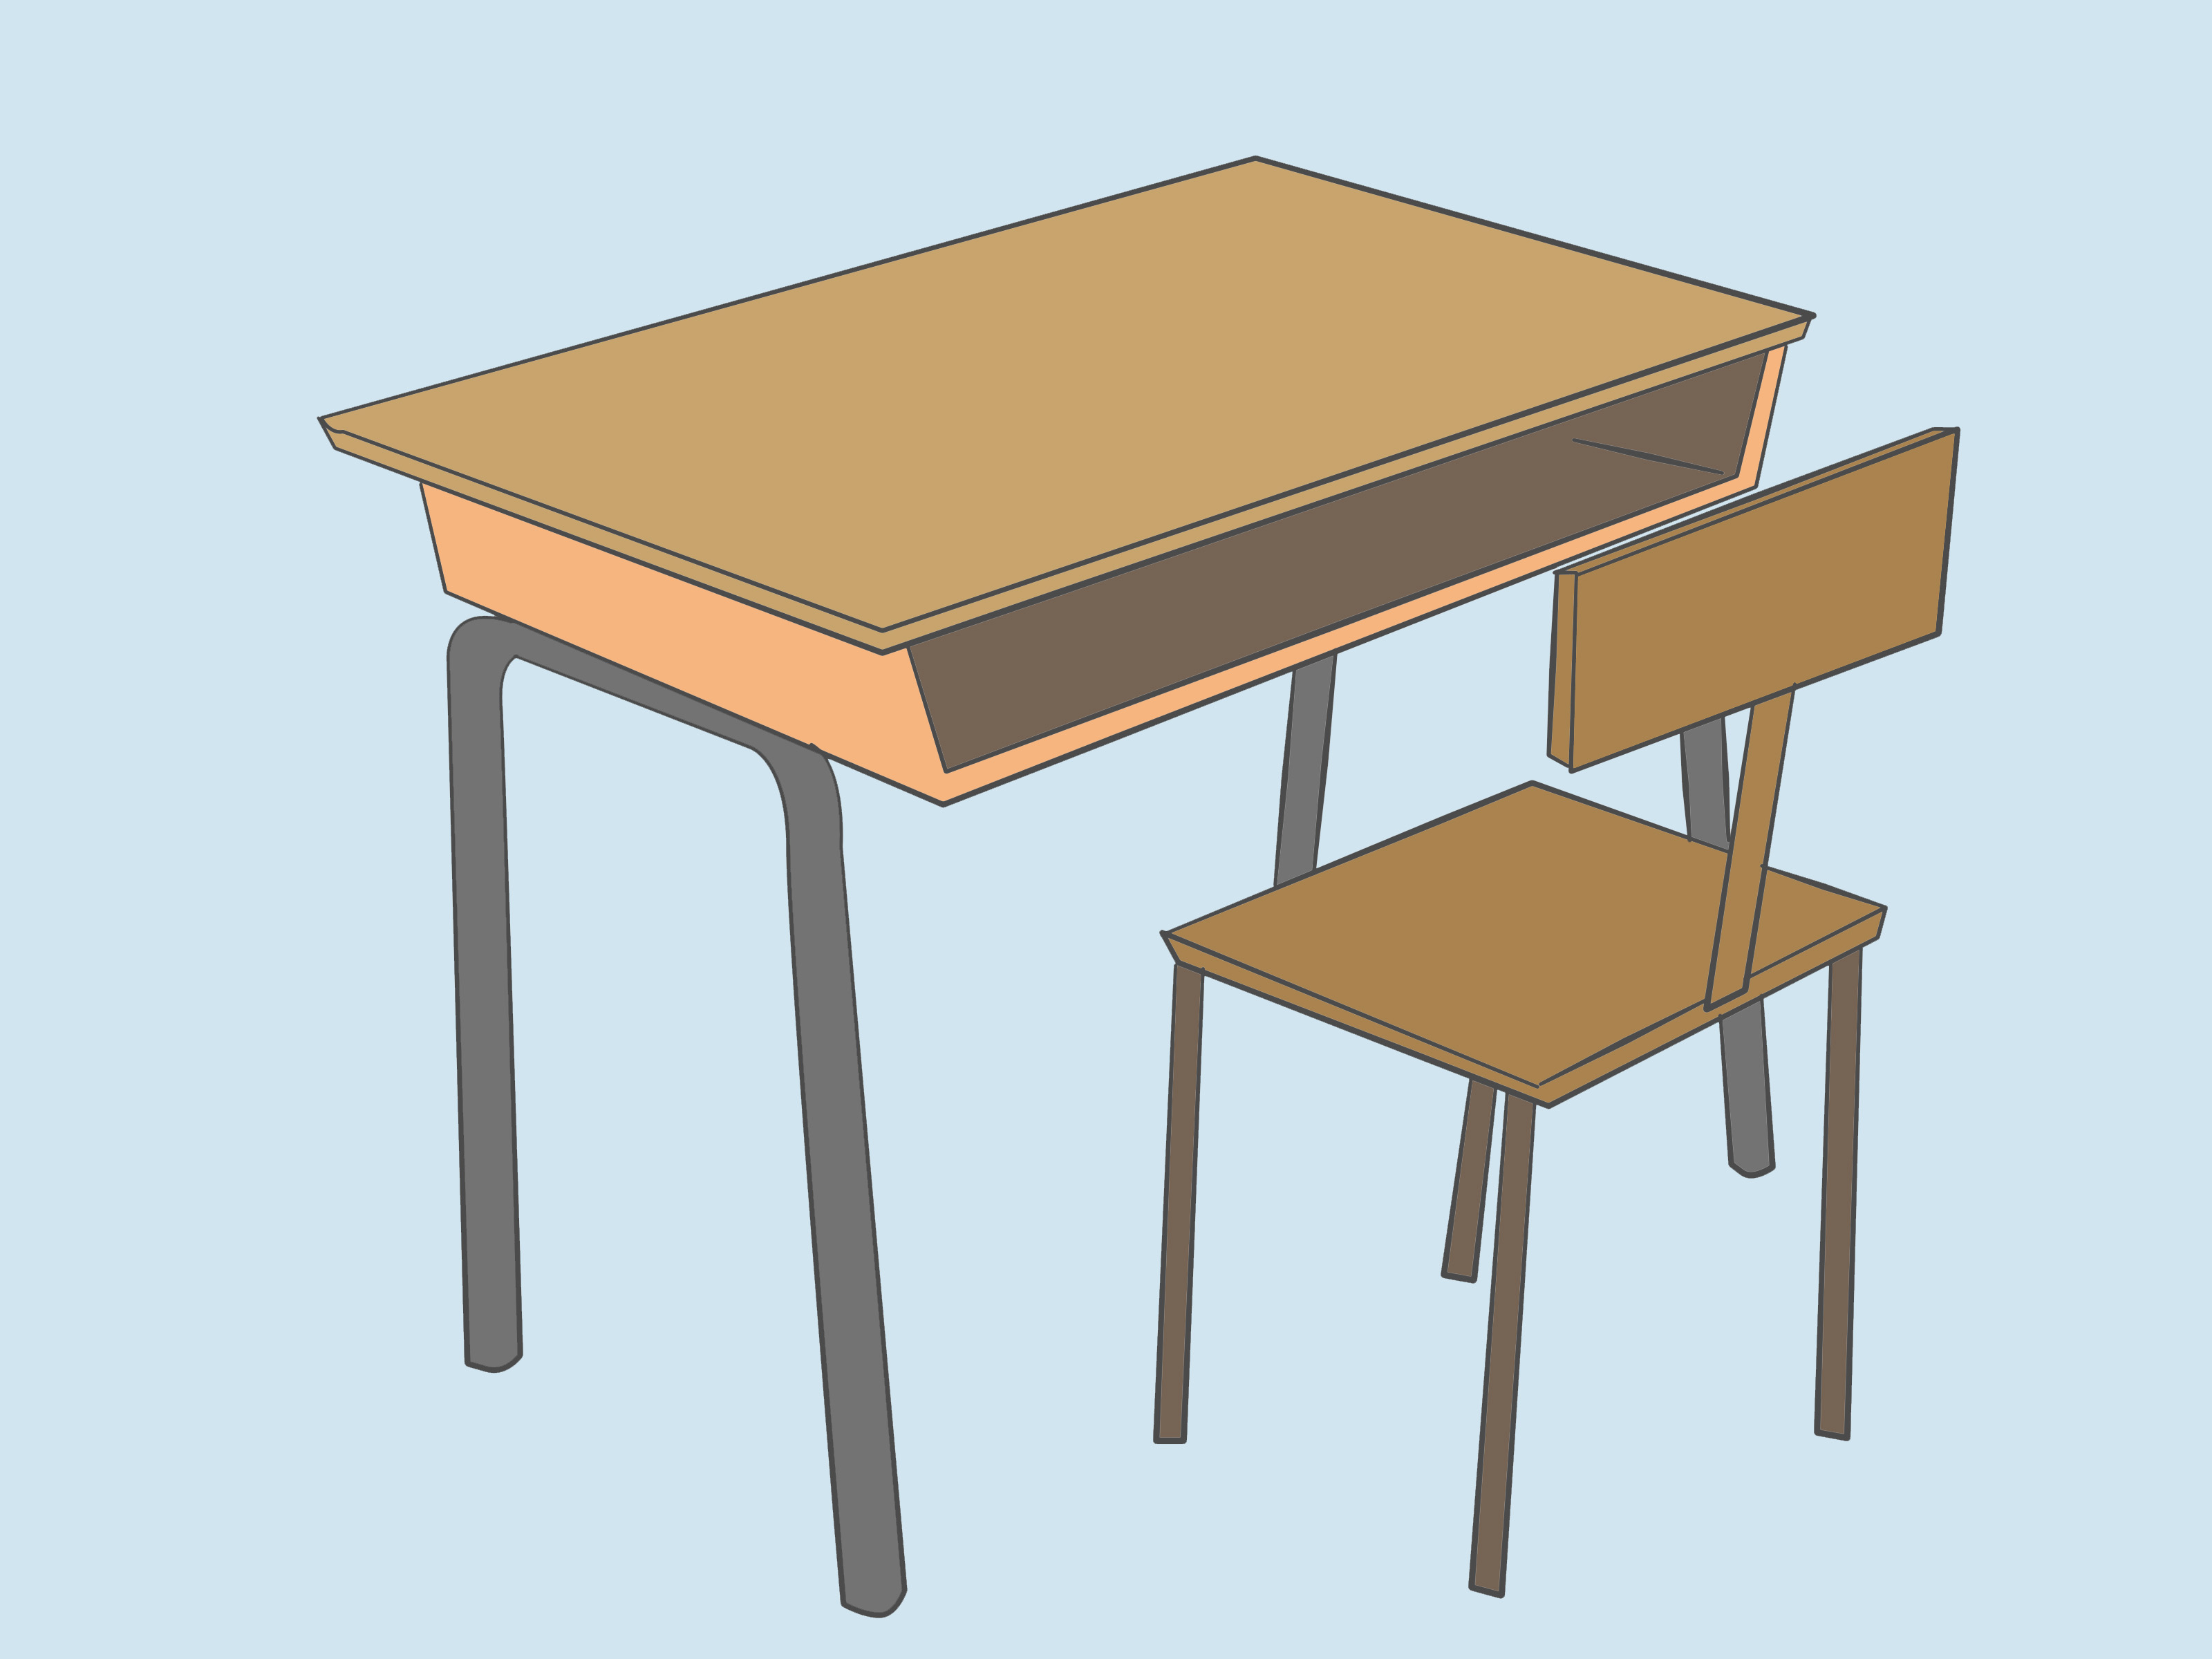 School Desk Drawing At Getdrawingscom Free For Personal Use School Desk Drawing Of Your Choice